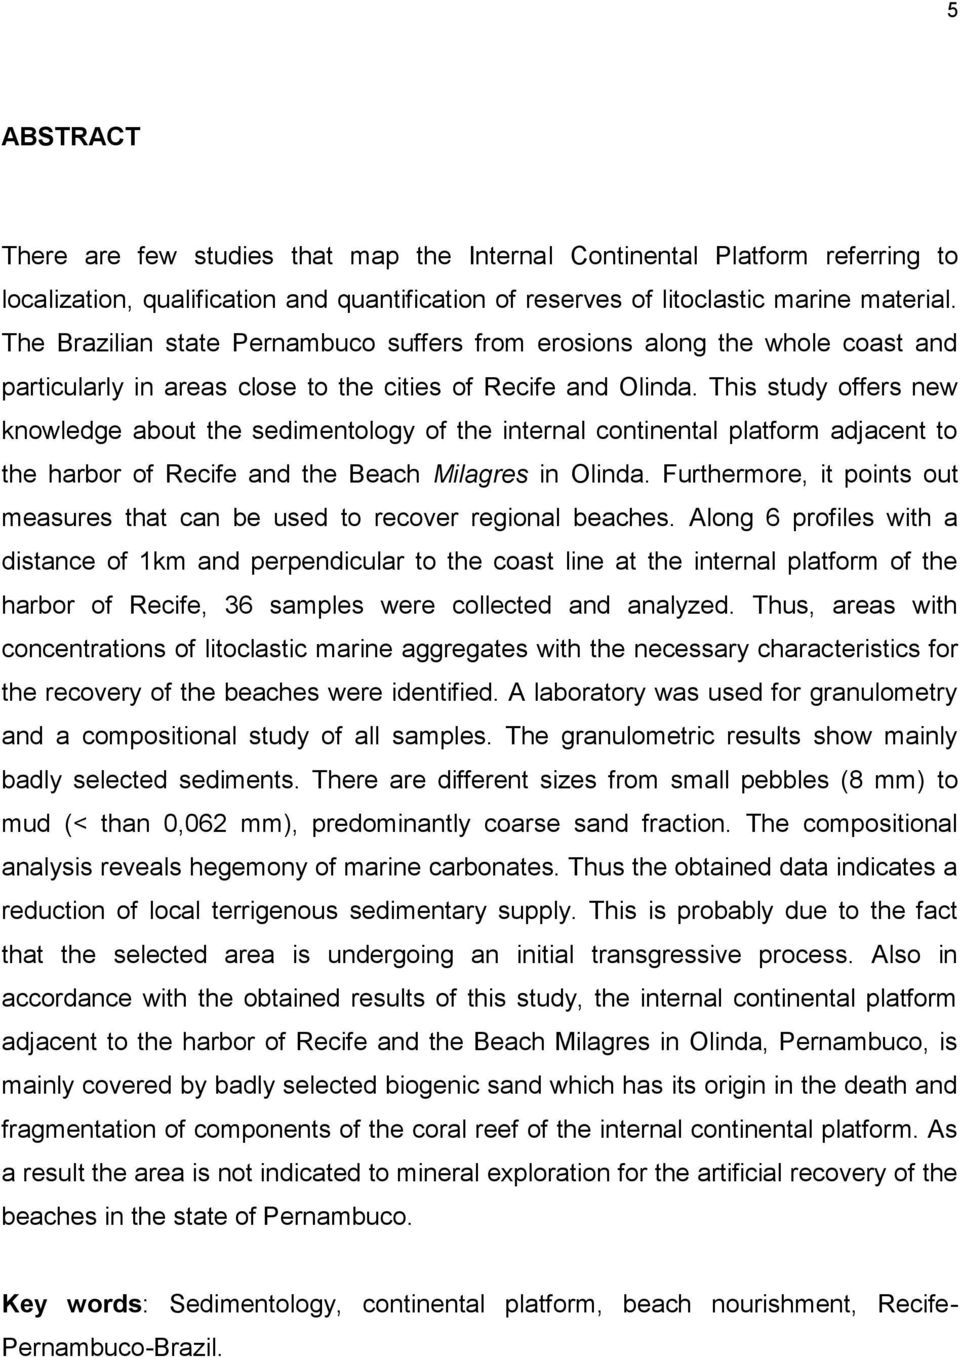 This study offers new knowledge about the sedimentology of the internal continental platform adjacent to the harbor of Recife and the Beach Milagres in Olinda.